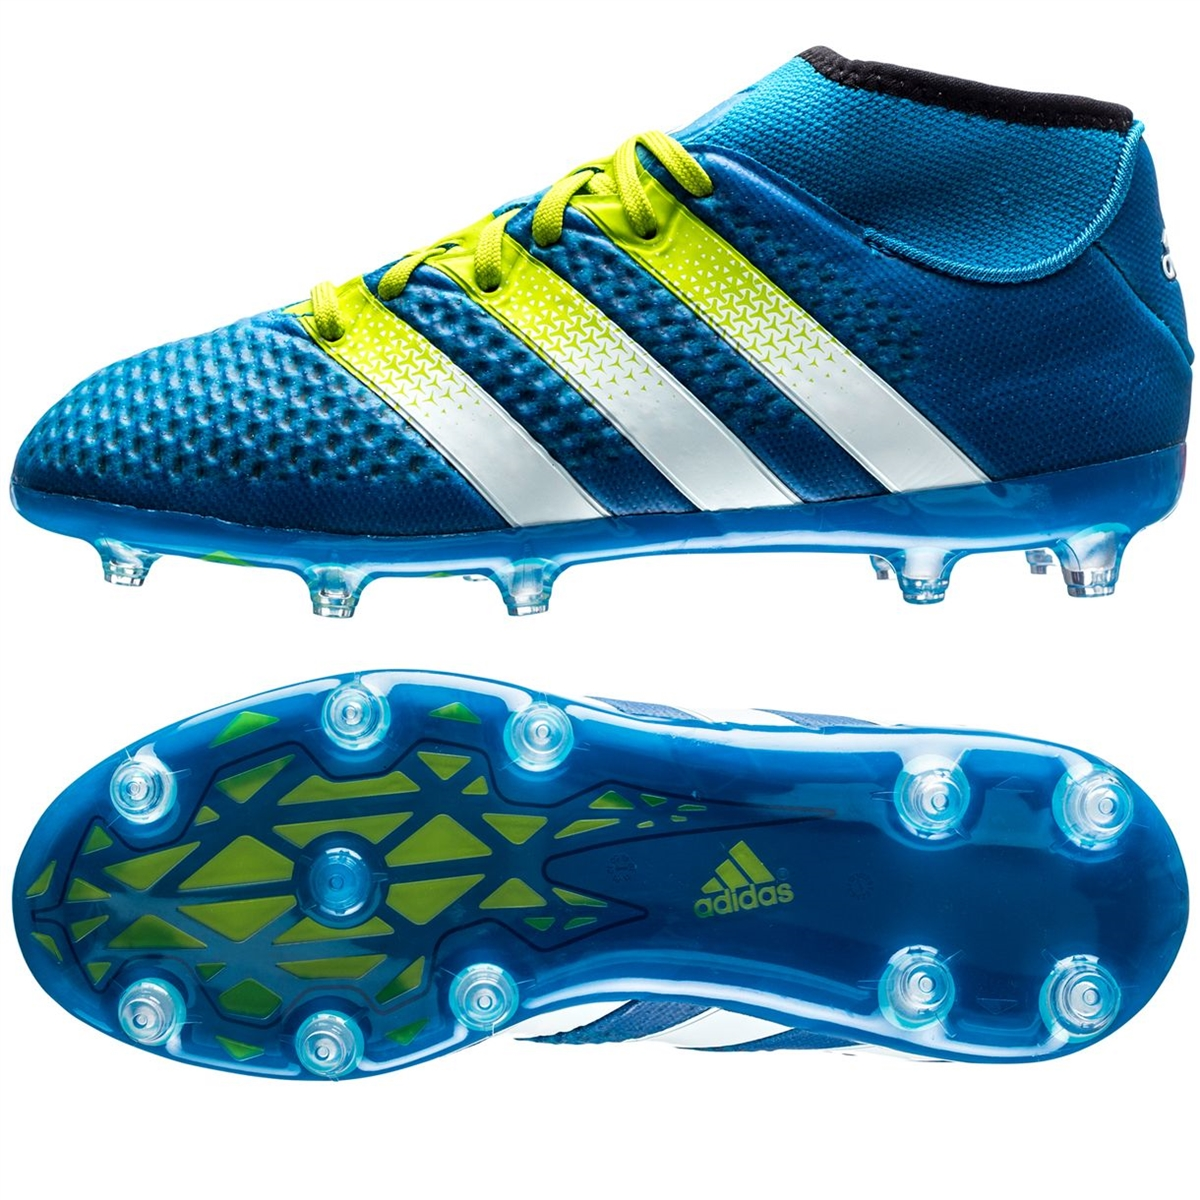 Adidas ACE 16.1 Primeknit Youth FG Soccer Cleats (Shock Semi Solar Slime)  89d353183